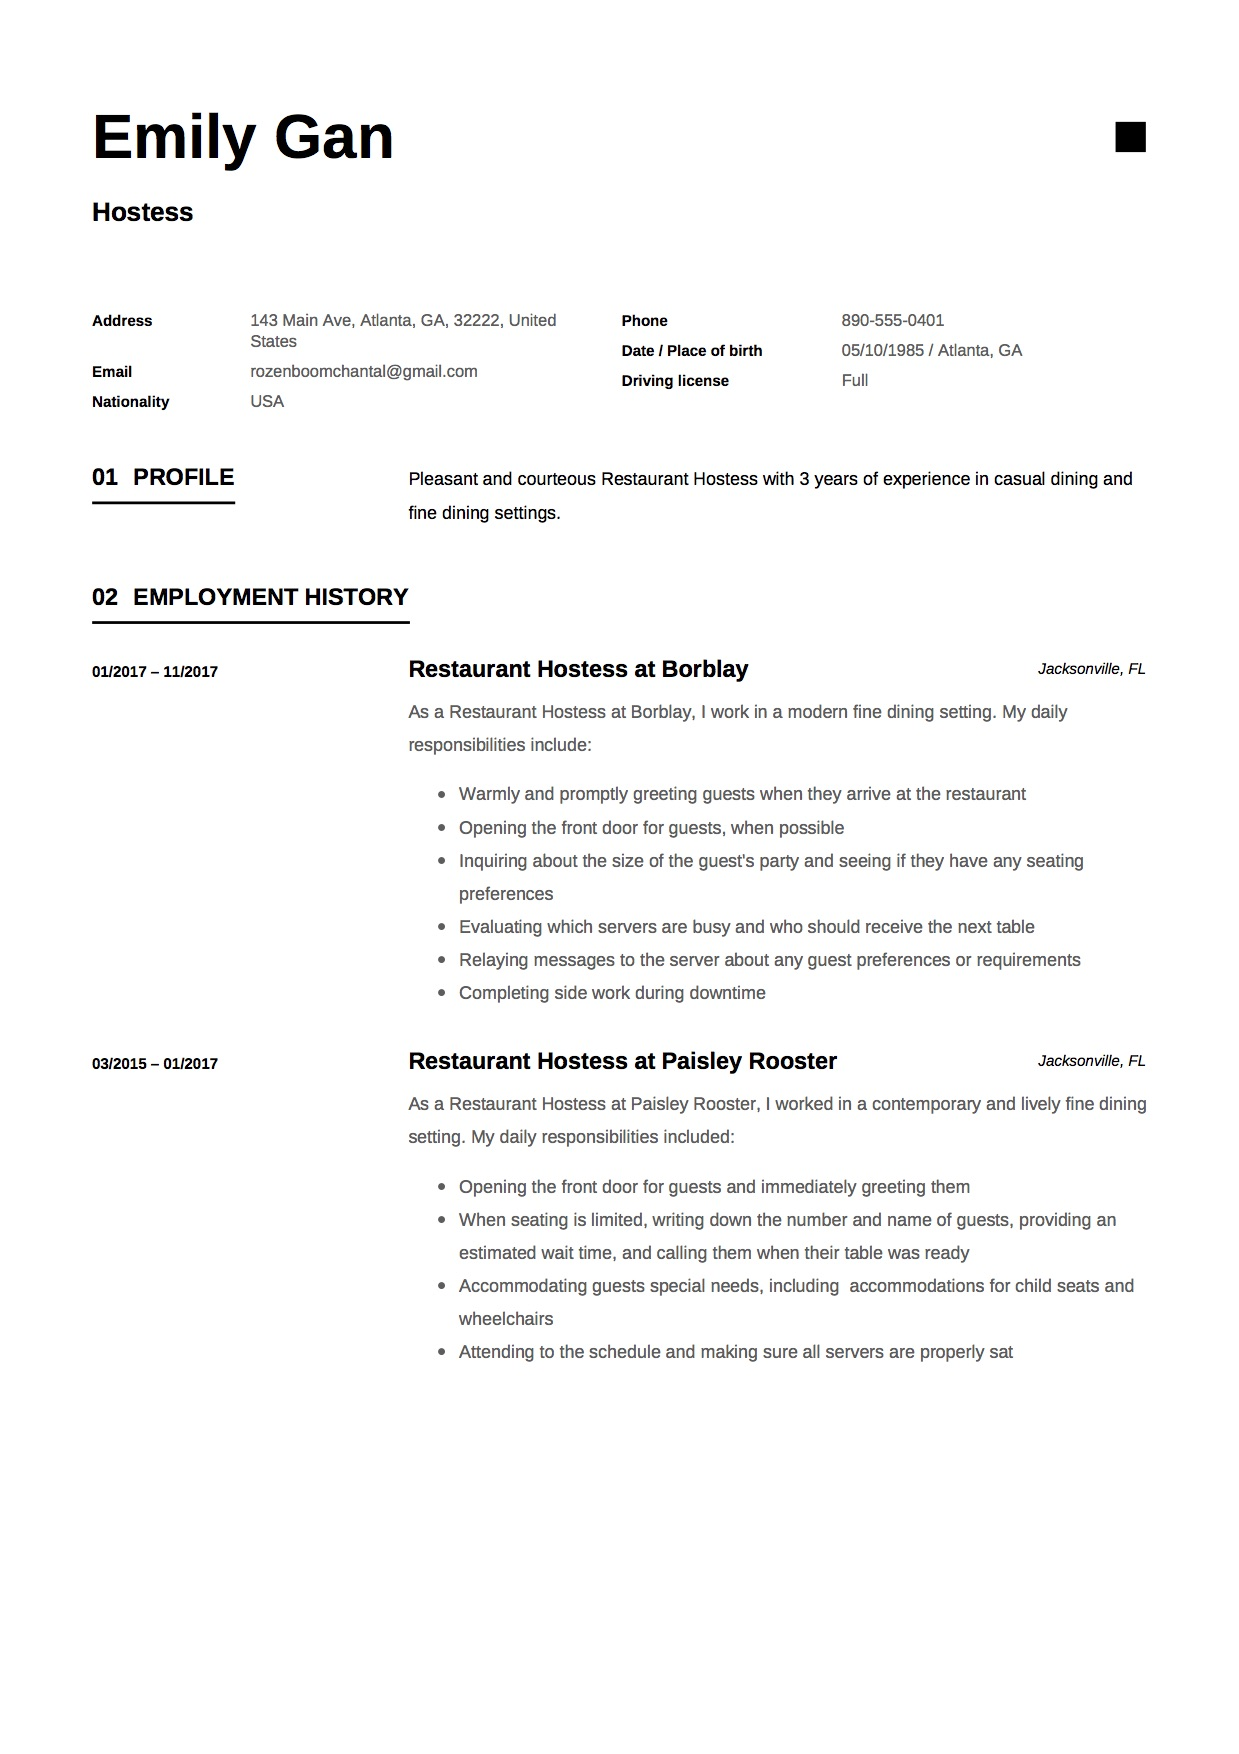 hostess resume guide examples free downloads job emily gan template capstone services Resume Hostess Job Resume Examples